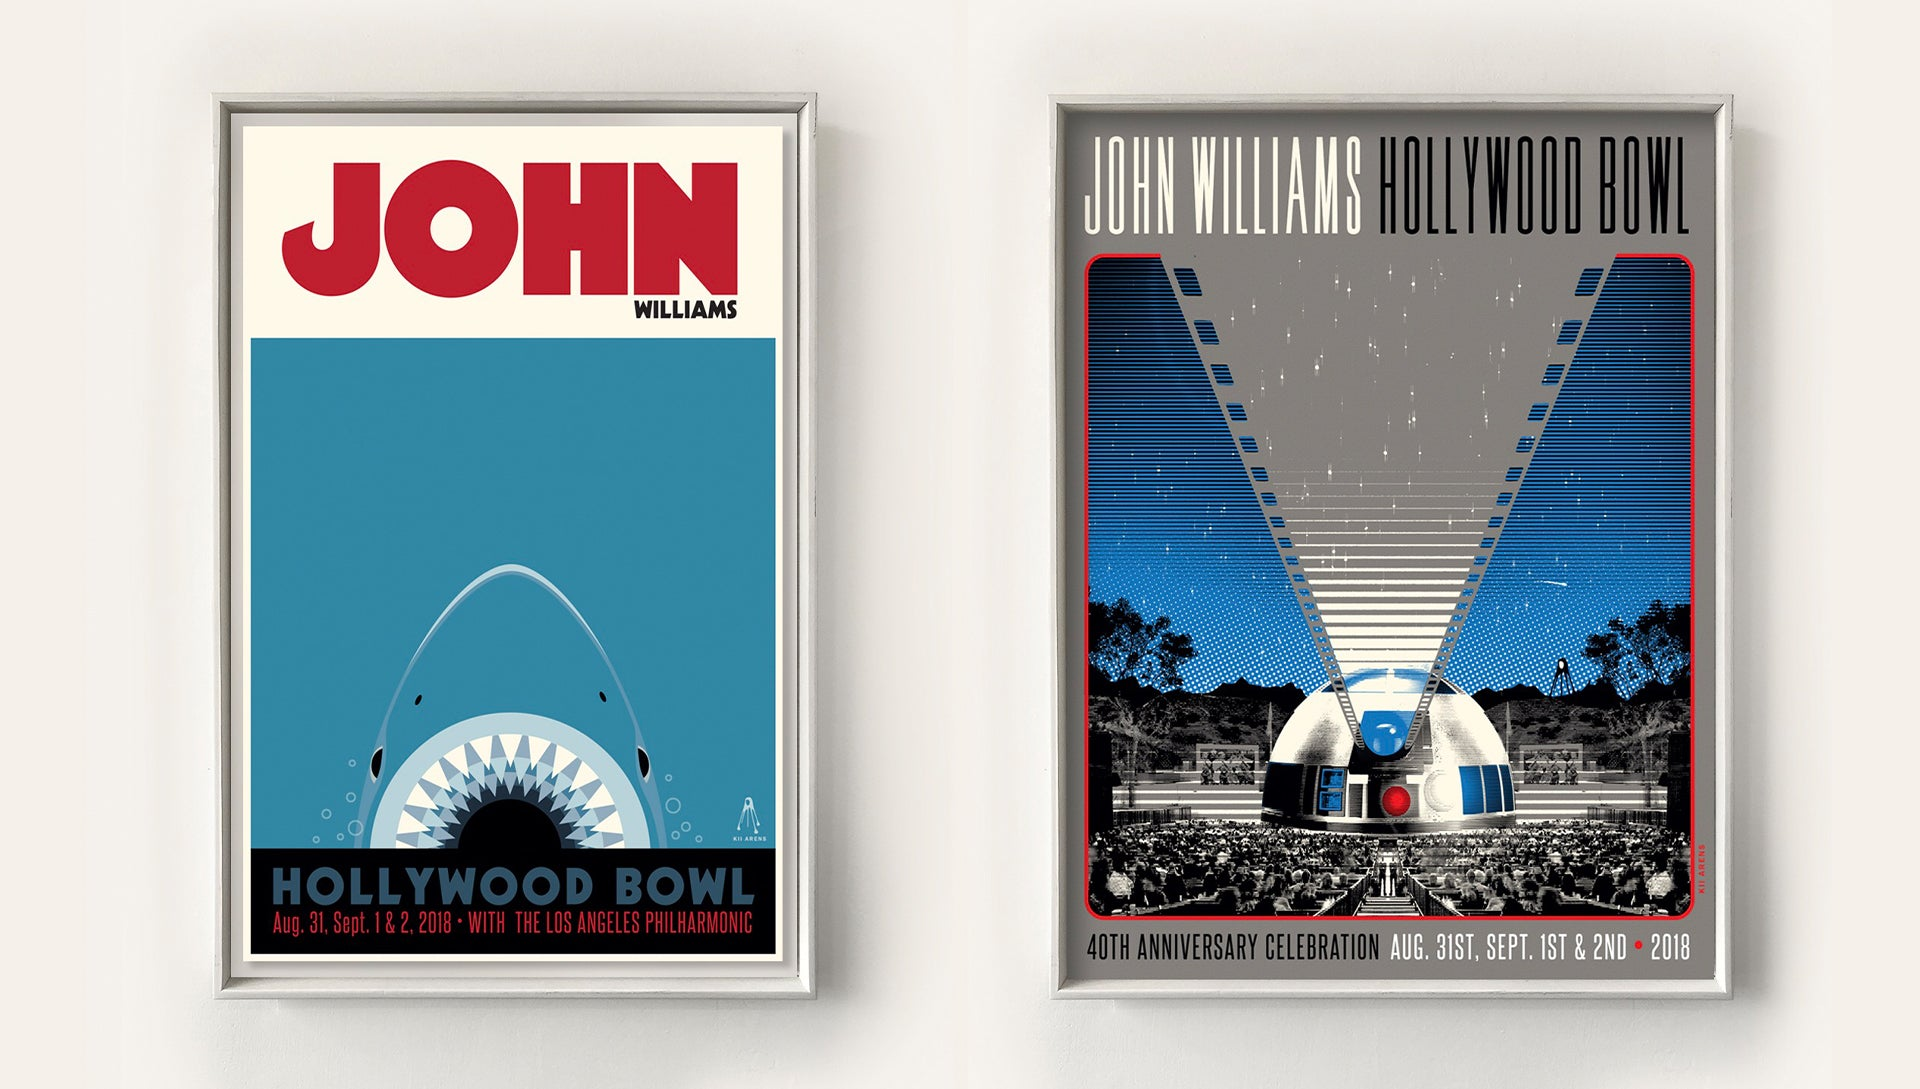 JOHN WILLIAMS - HOLLYWOOD BOWL